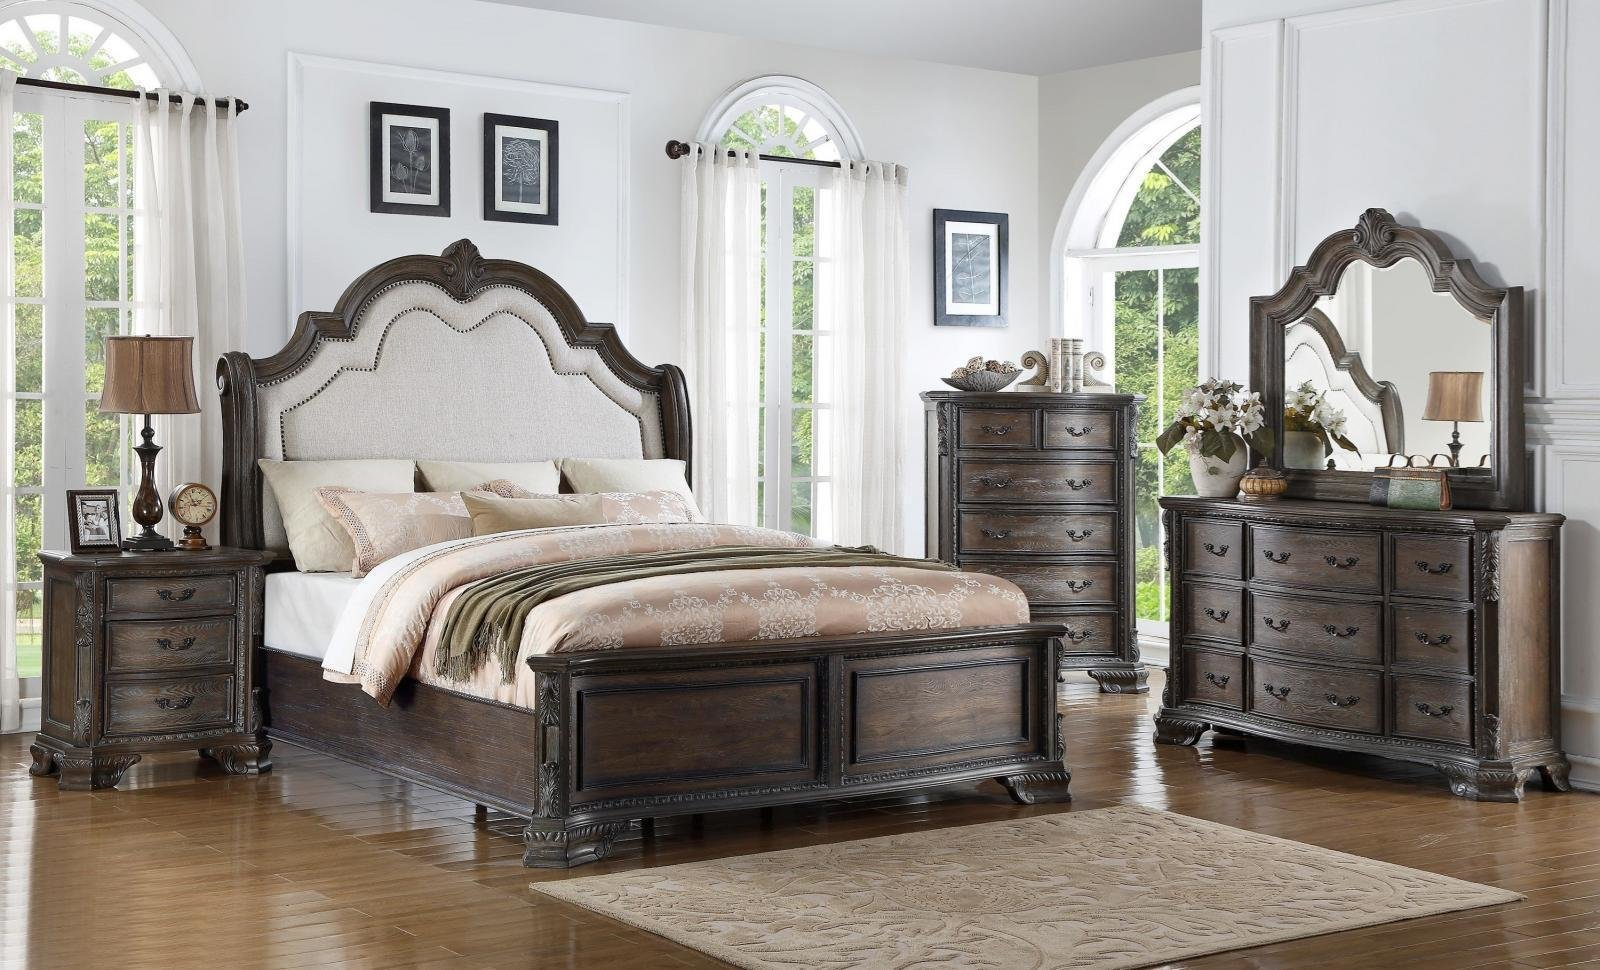 Best Grey Bedroom Set For Sale Only 2 Left At 65 With Pictures